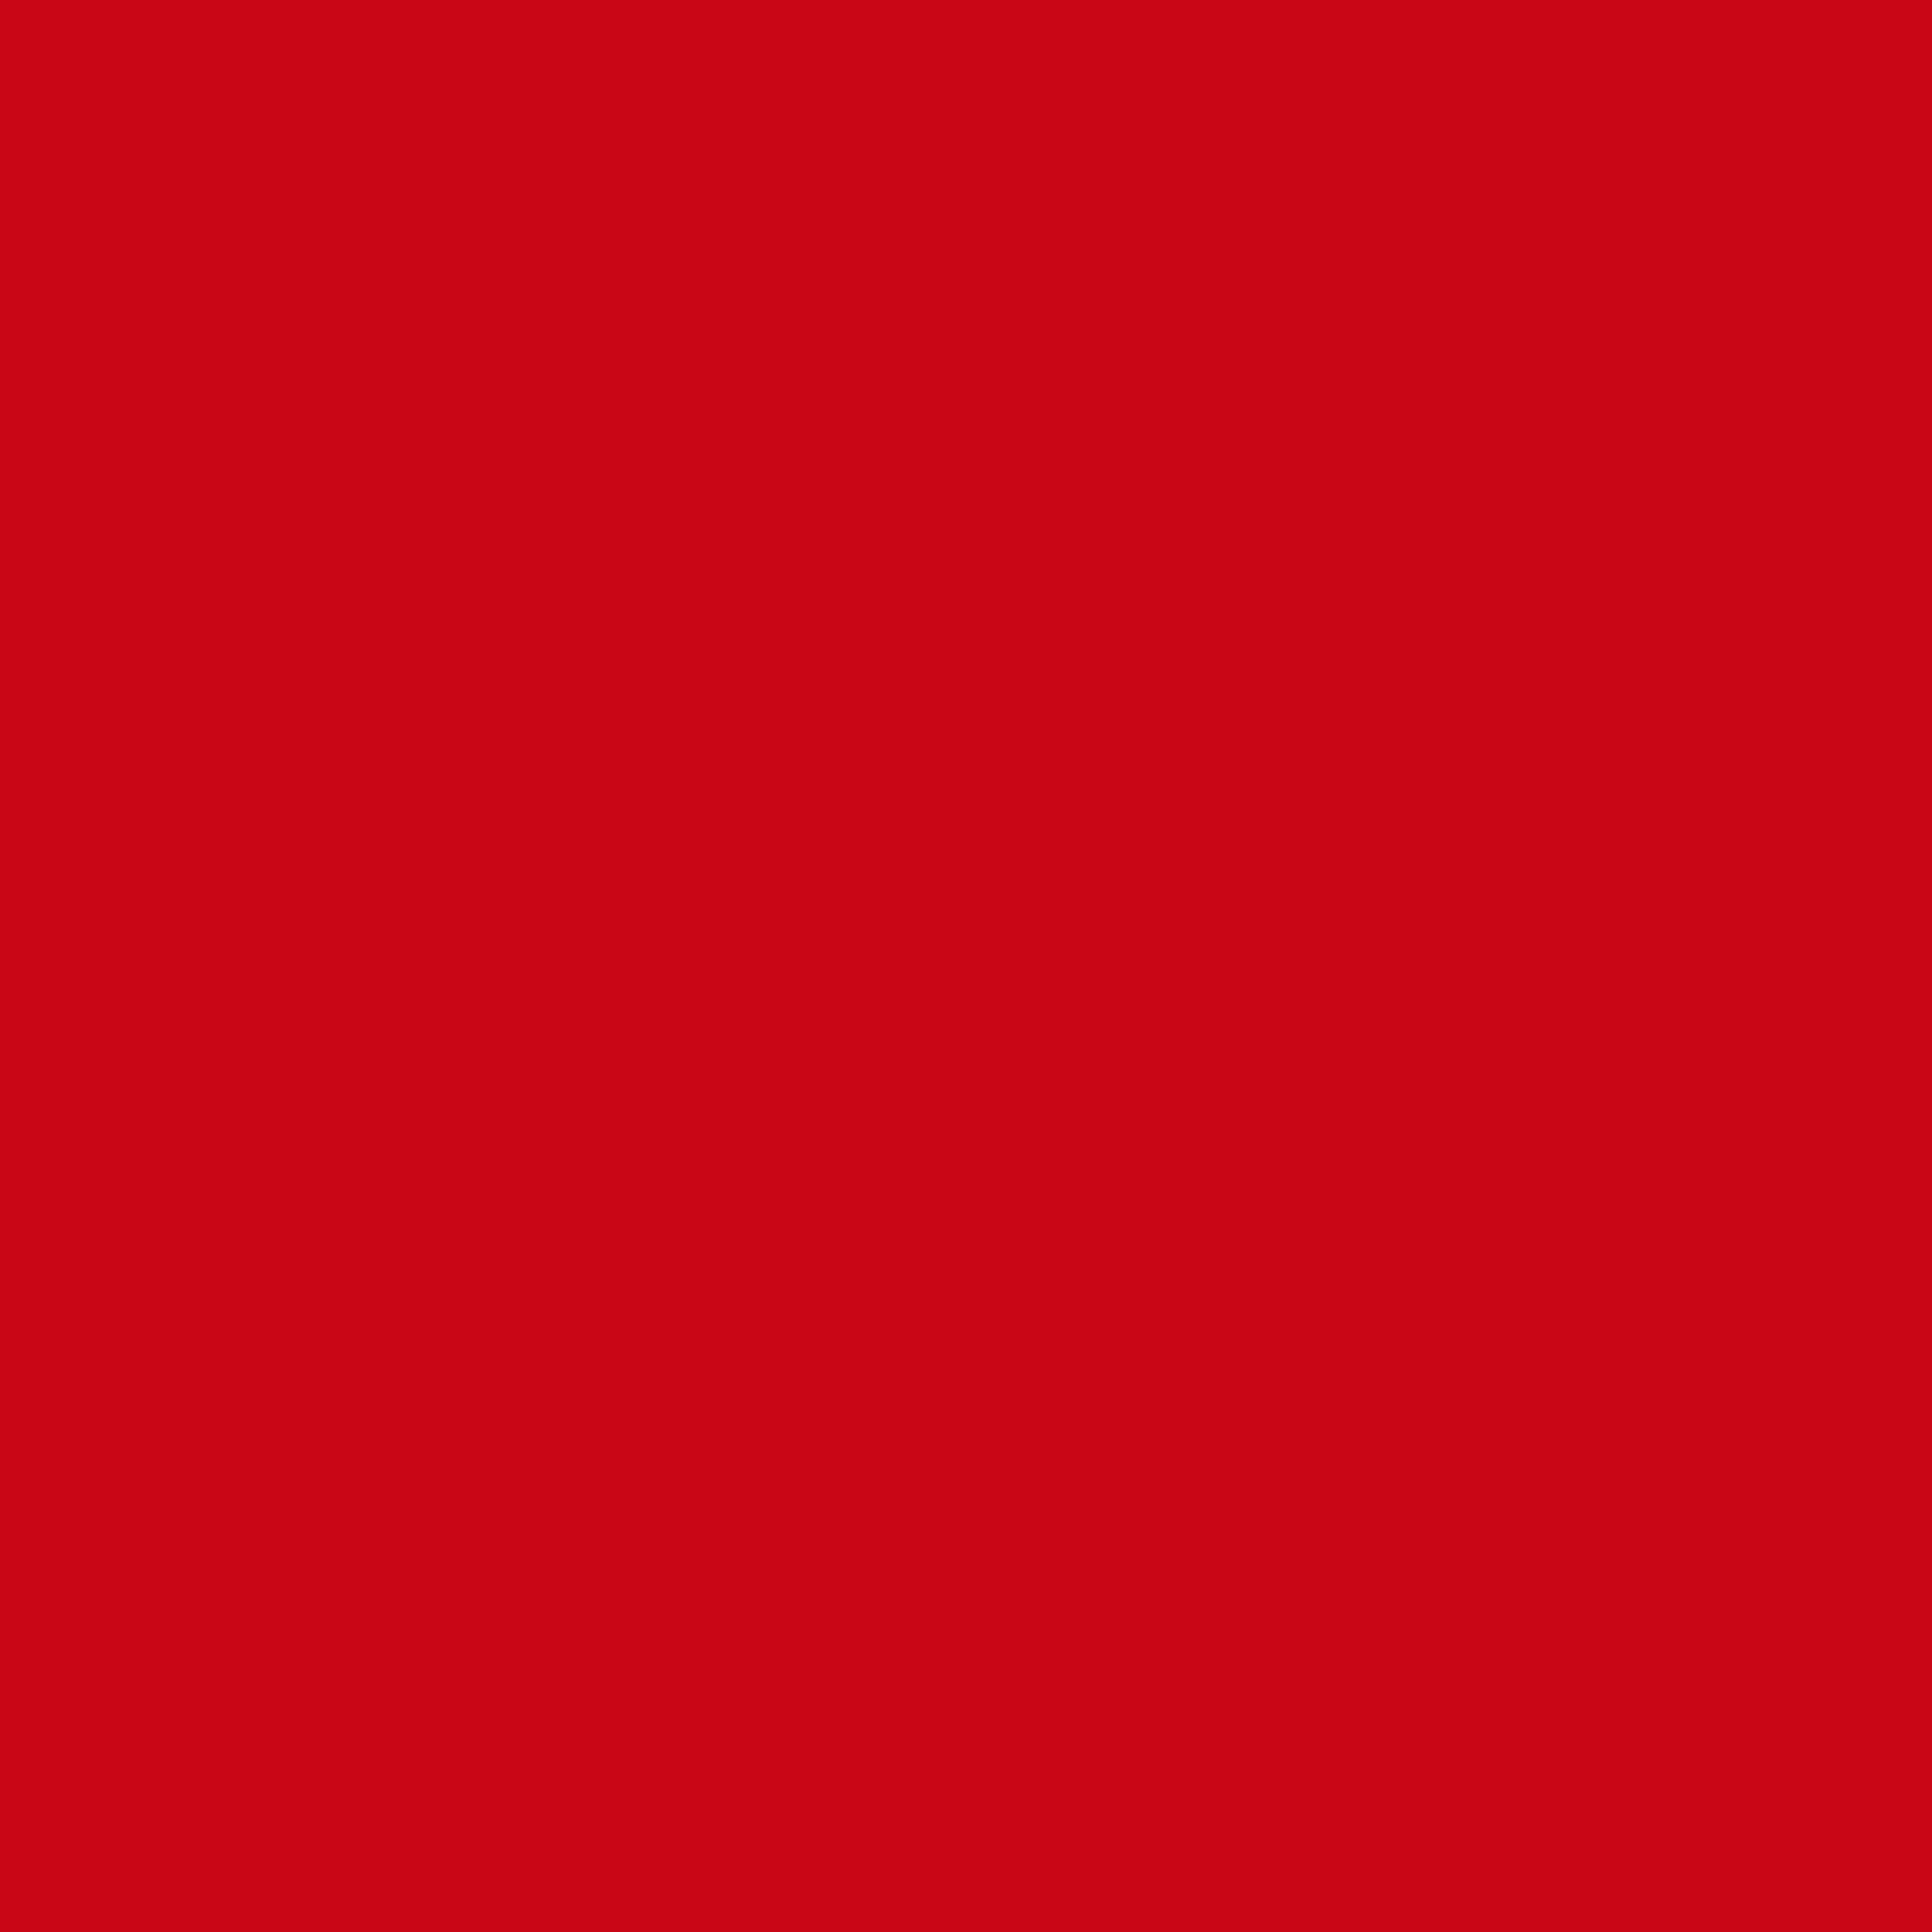 2732x2732 Venetian Red Solid Color Background